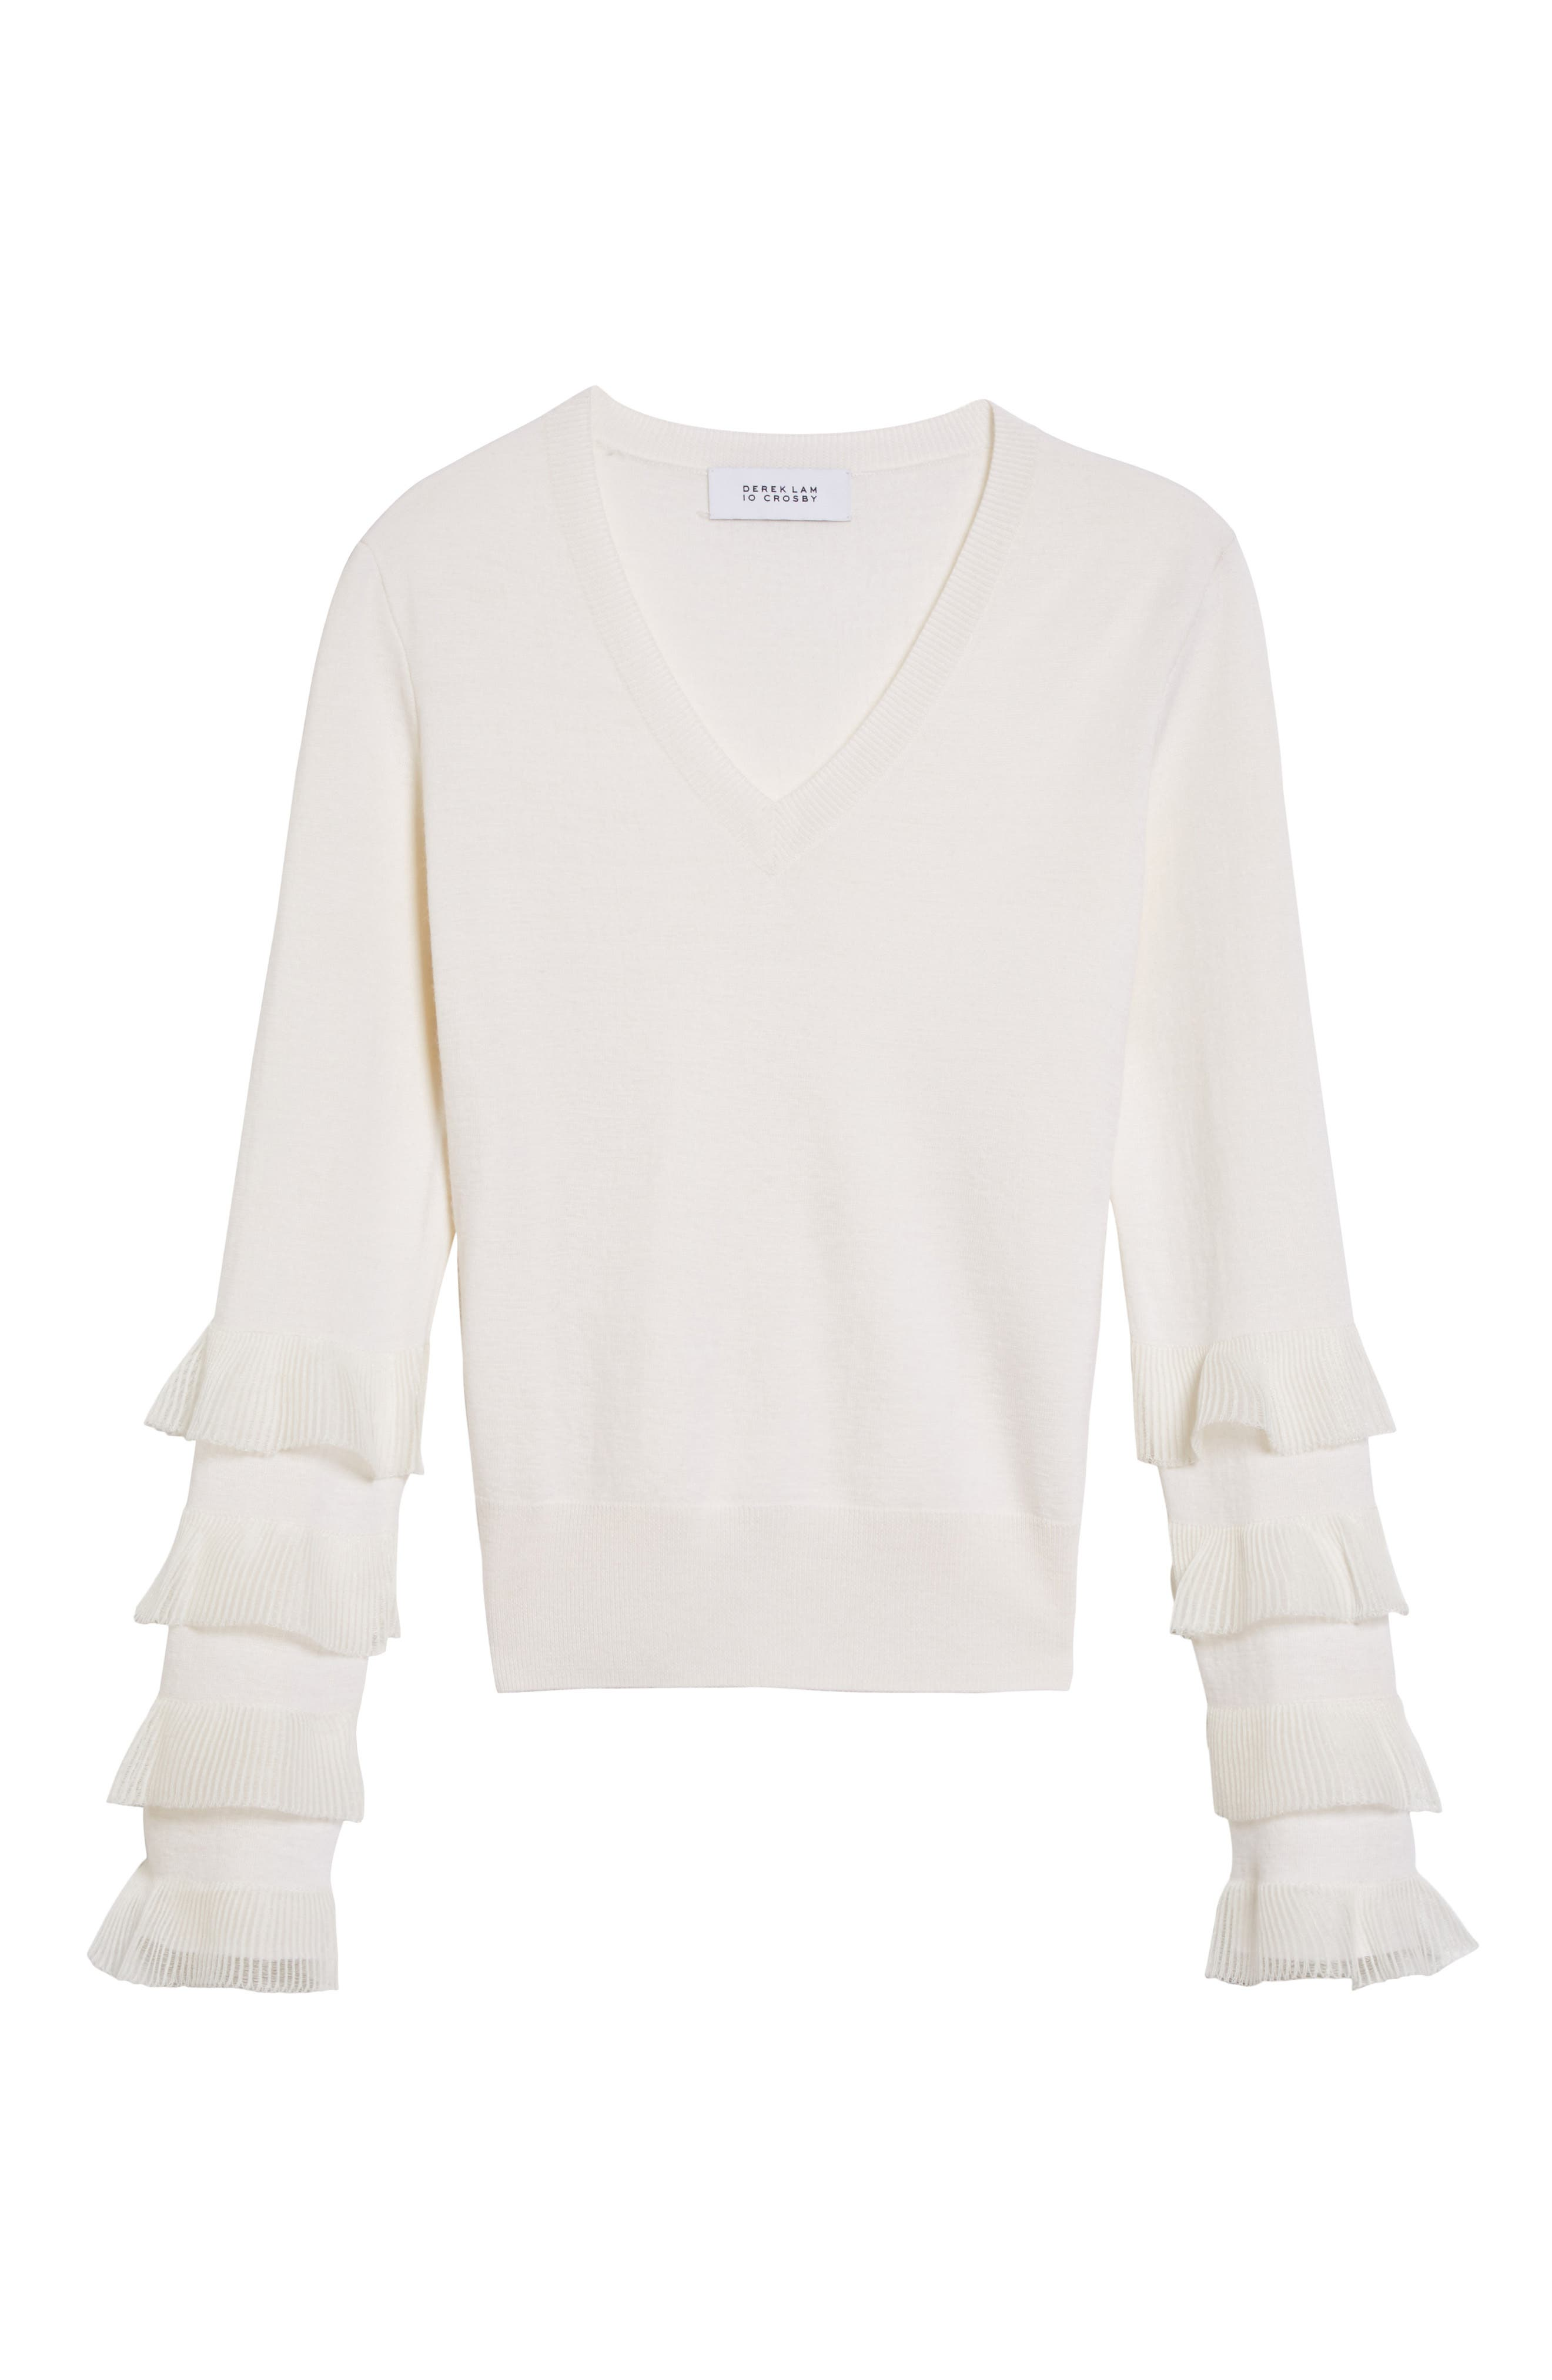 Tiered Ruffle Sleeve Sweater,                             Alternate thumbnail 6, color,                             White